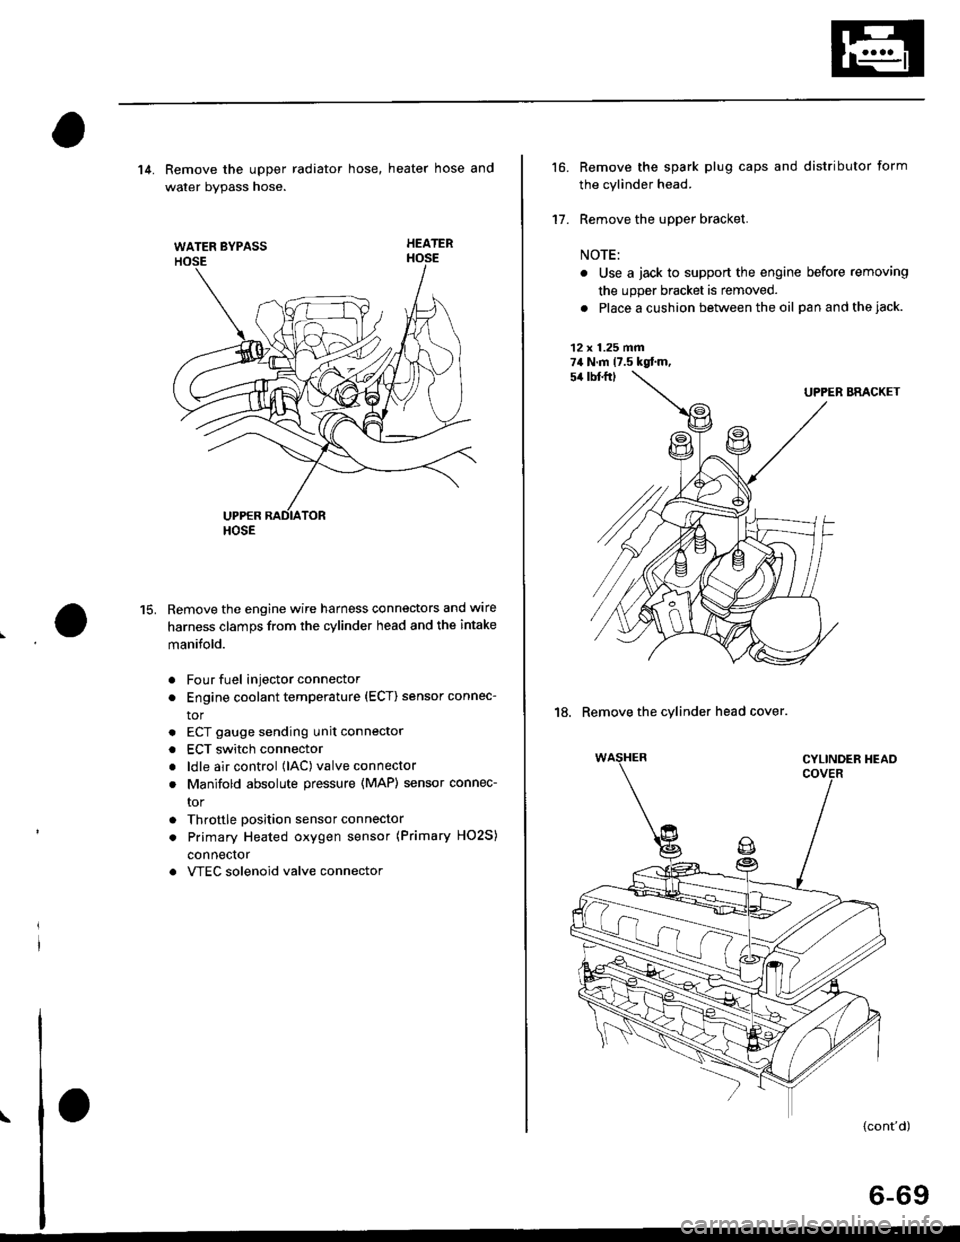 Engine Honda Civic 1997 6g Workshop Manual Intake Manifold Wiring Page 179